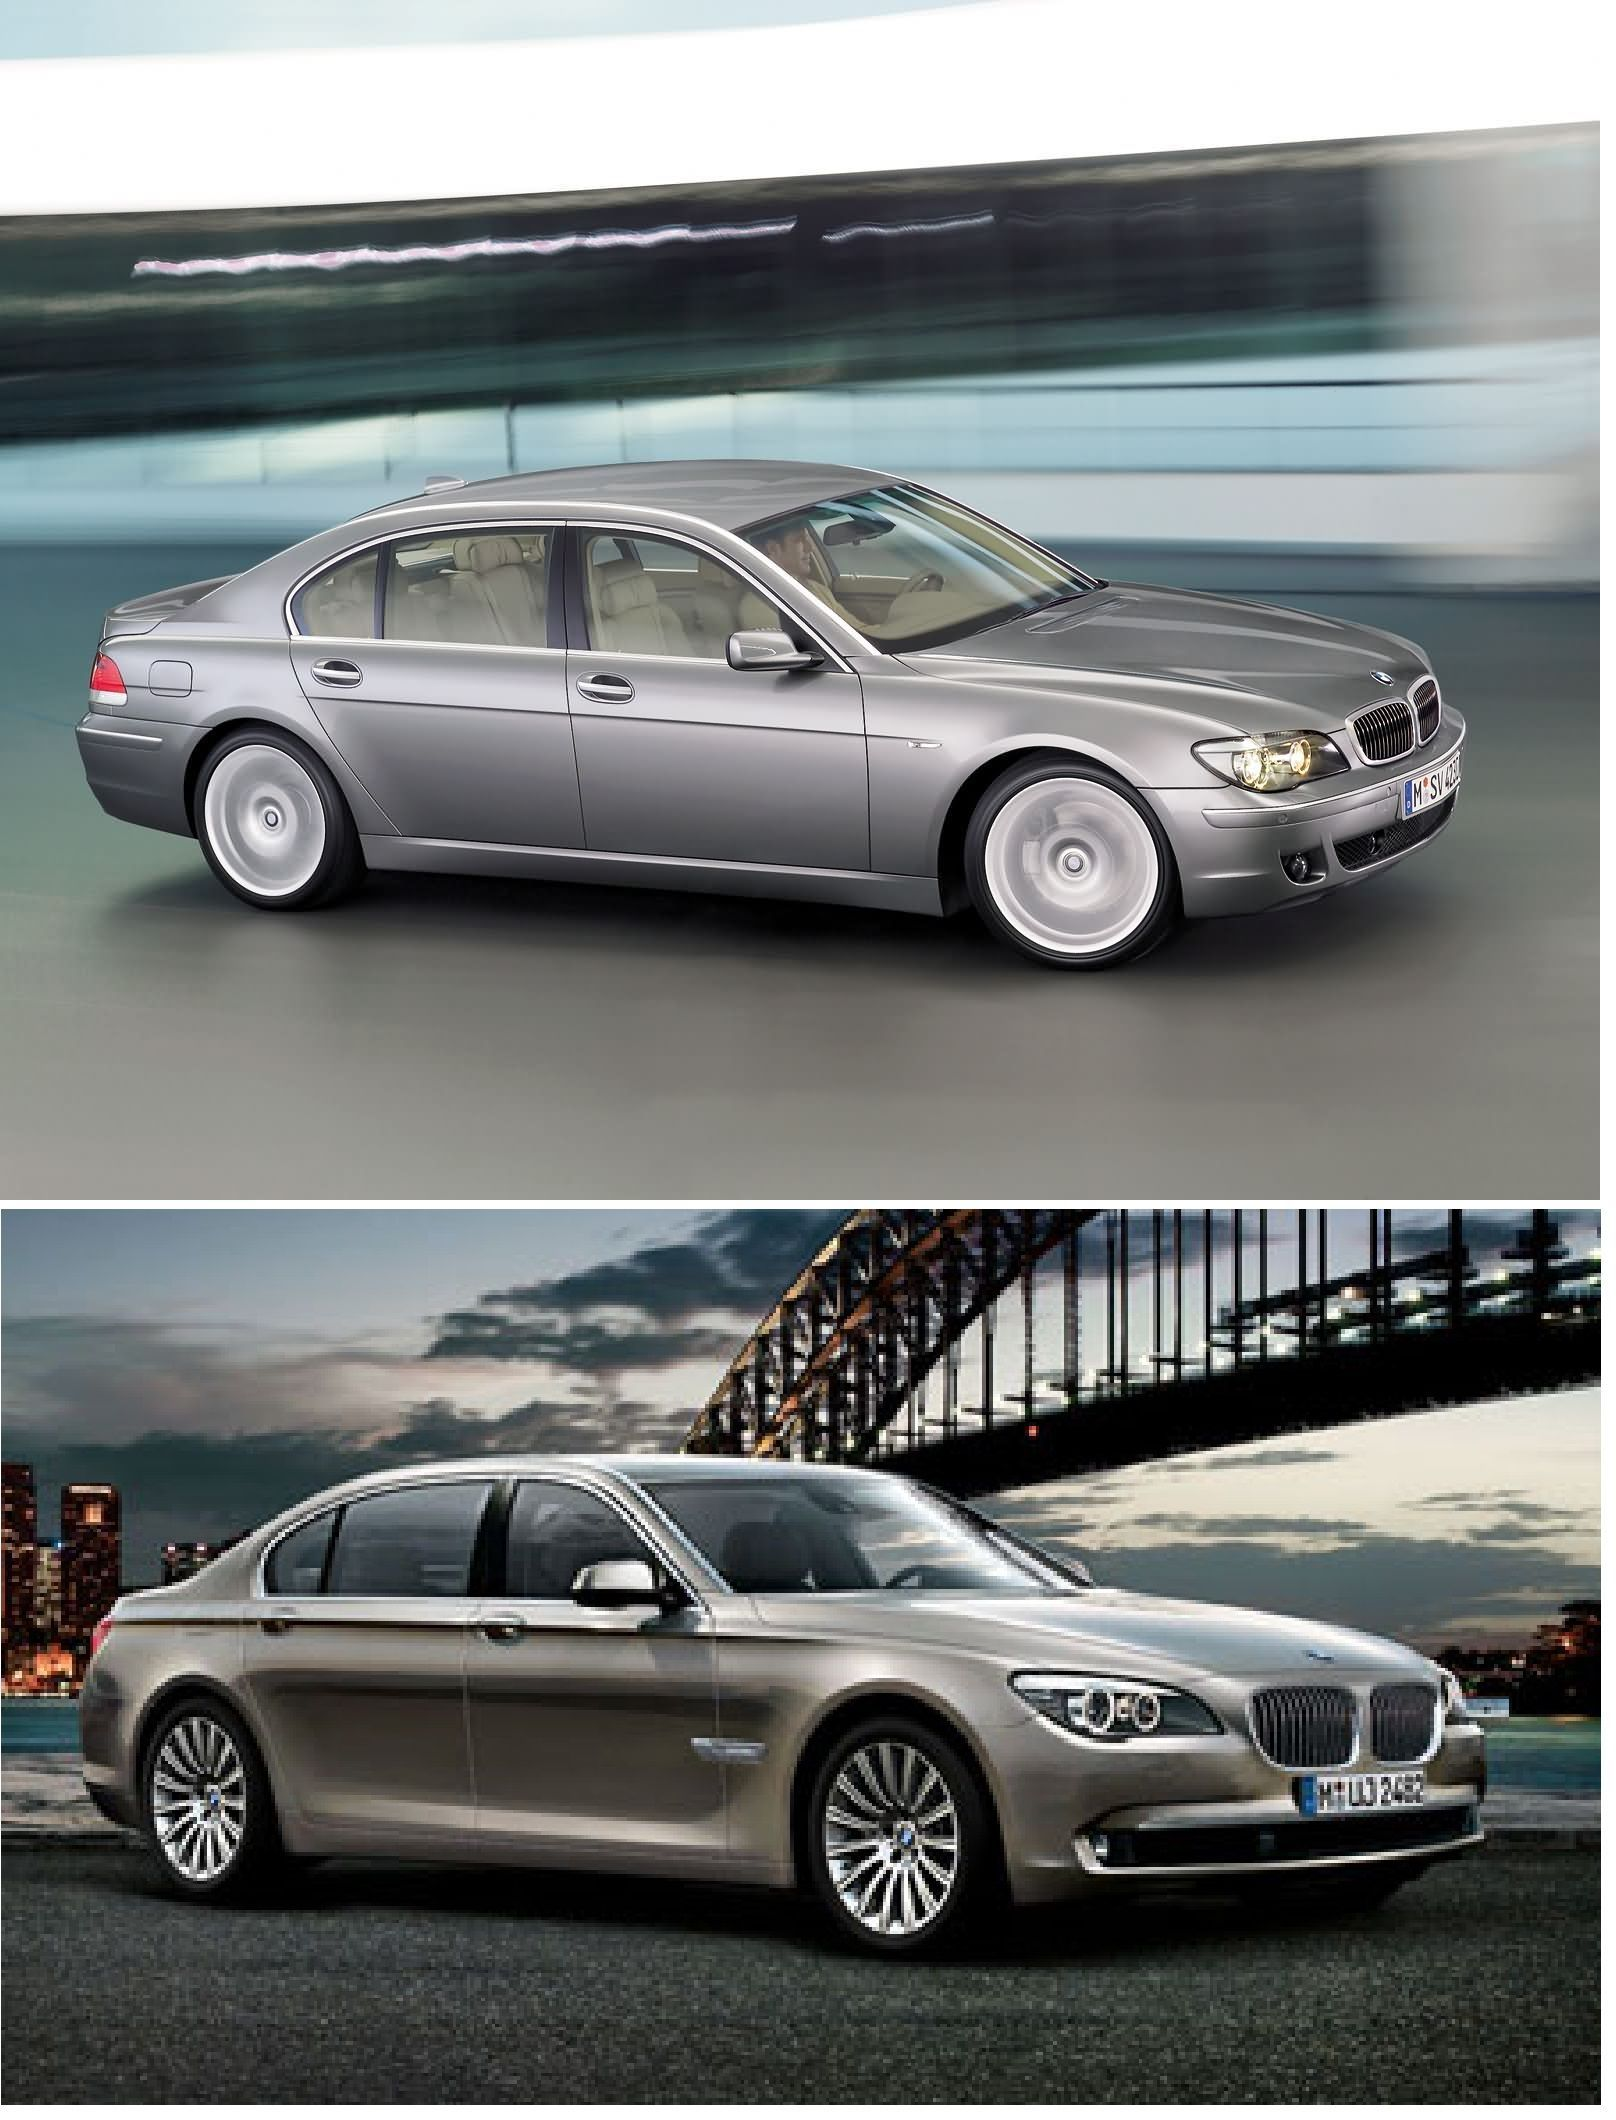 BMW 7 Series WIS (2006-2011) Workshop information software (2006-2011) for  BMW 7 Series (E65/E66/F01/F02/F04).